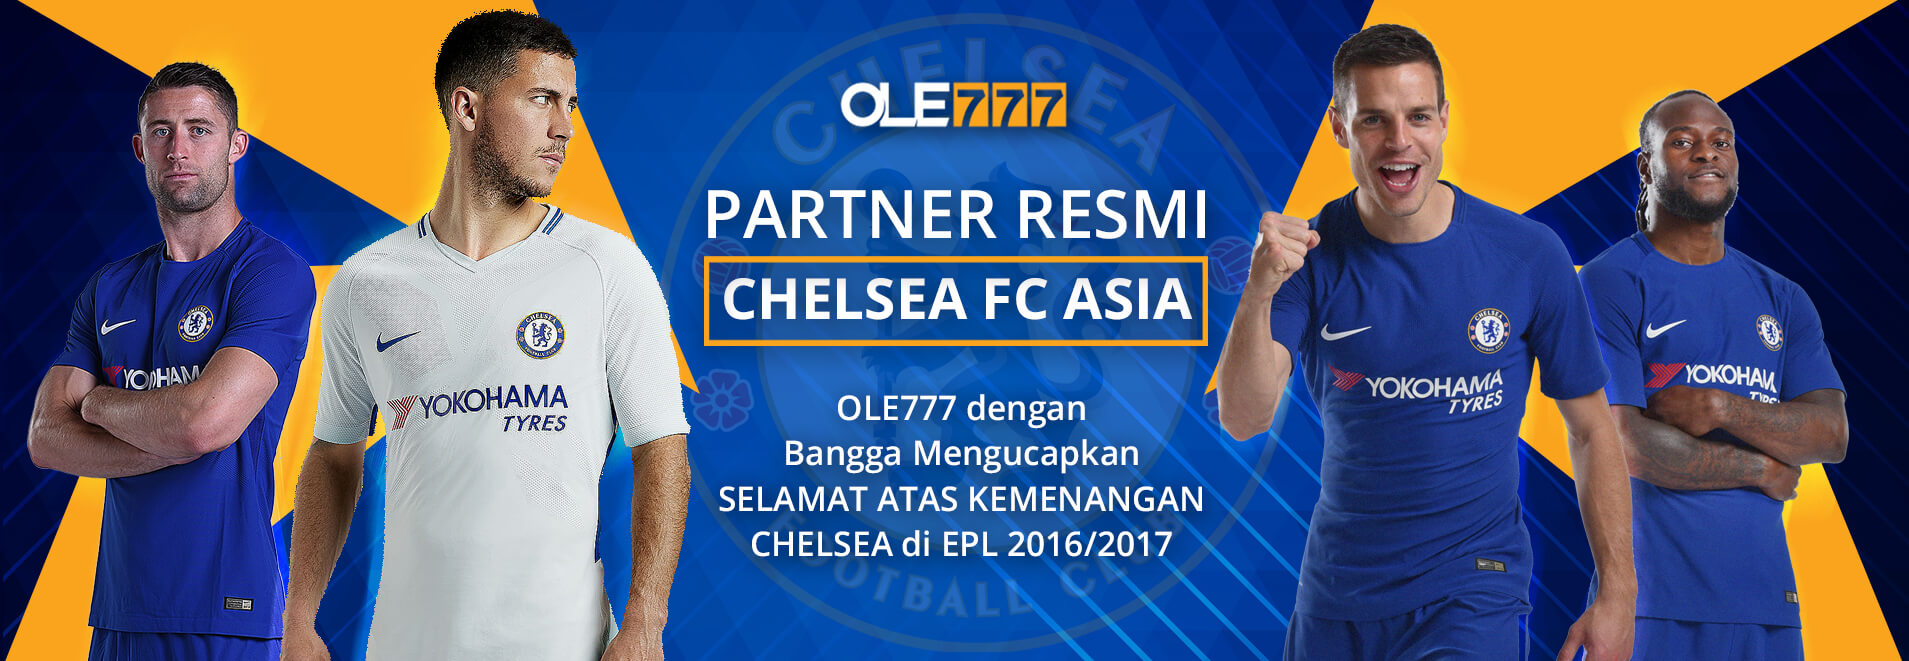 <a href='http://indo.chelseafc.com/the-club/sponsors/sponsors---partners/ole777.html' class = 'btn btn-warning' >SELENGKAPNYA</a>